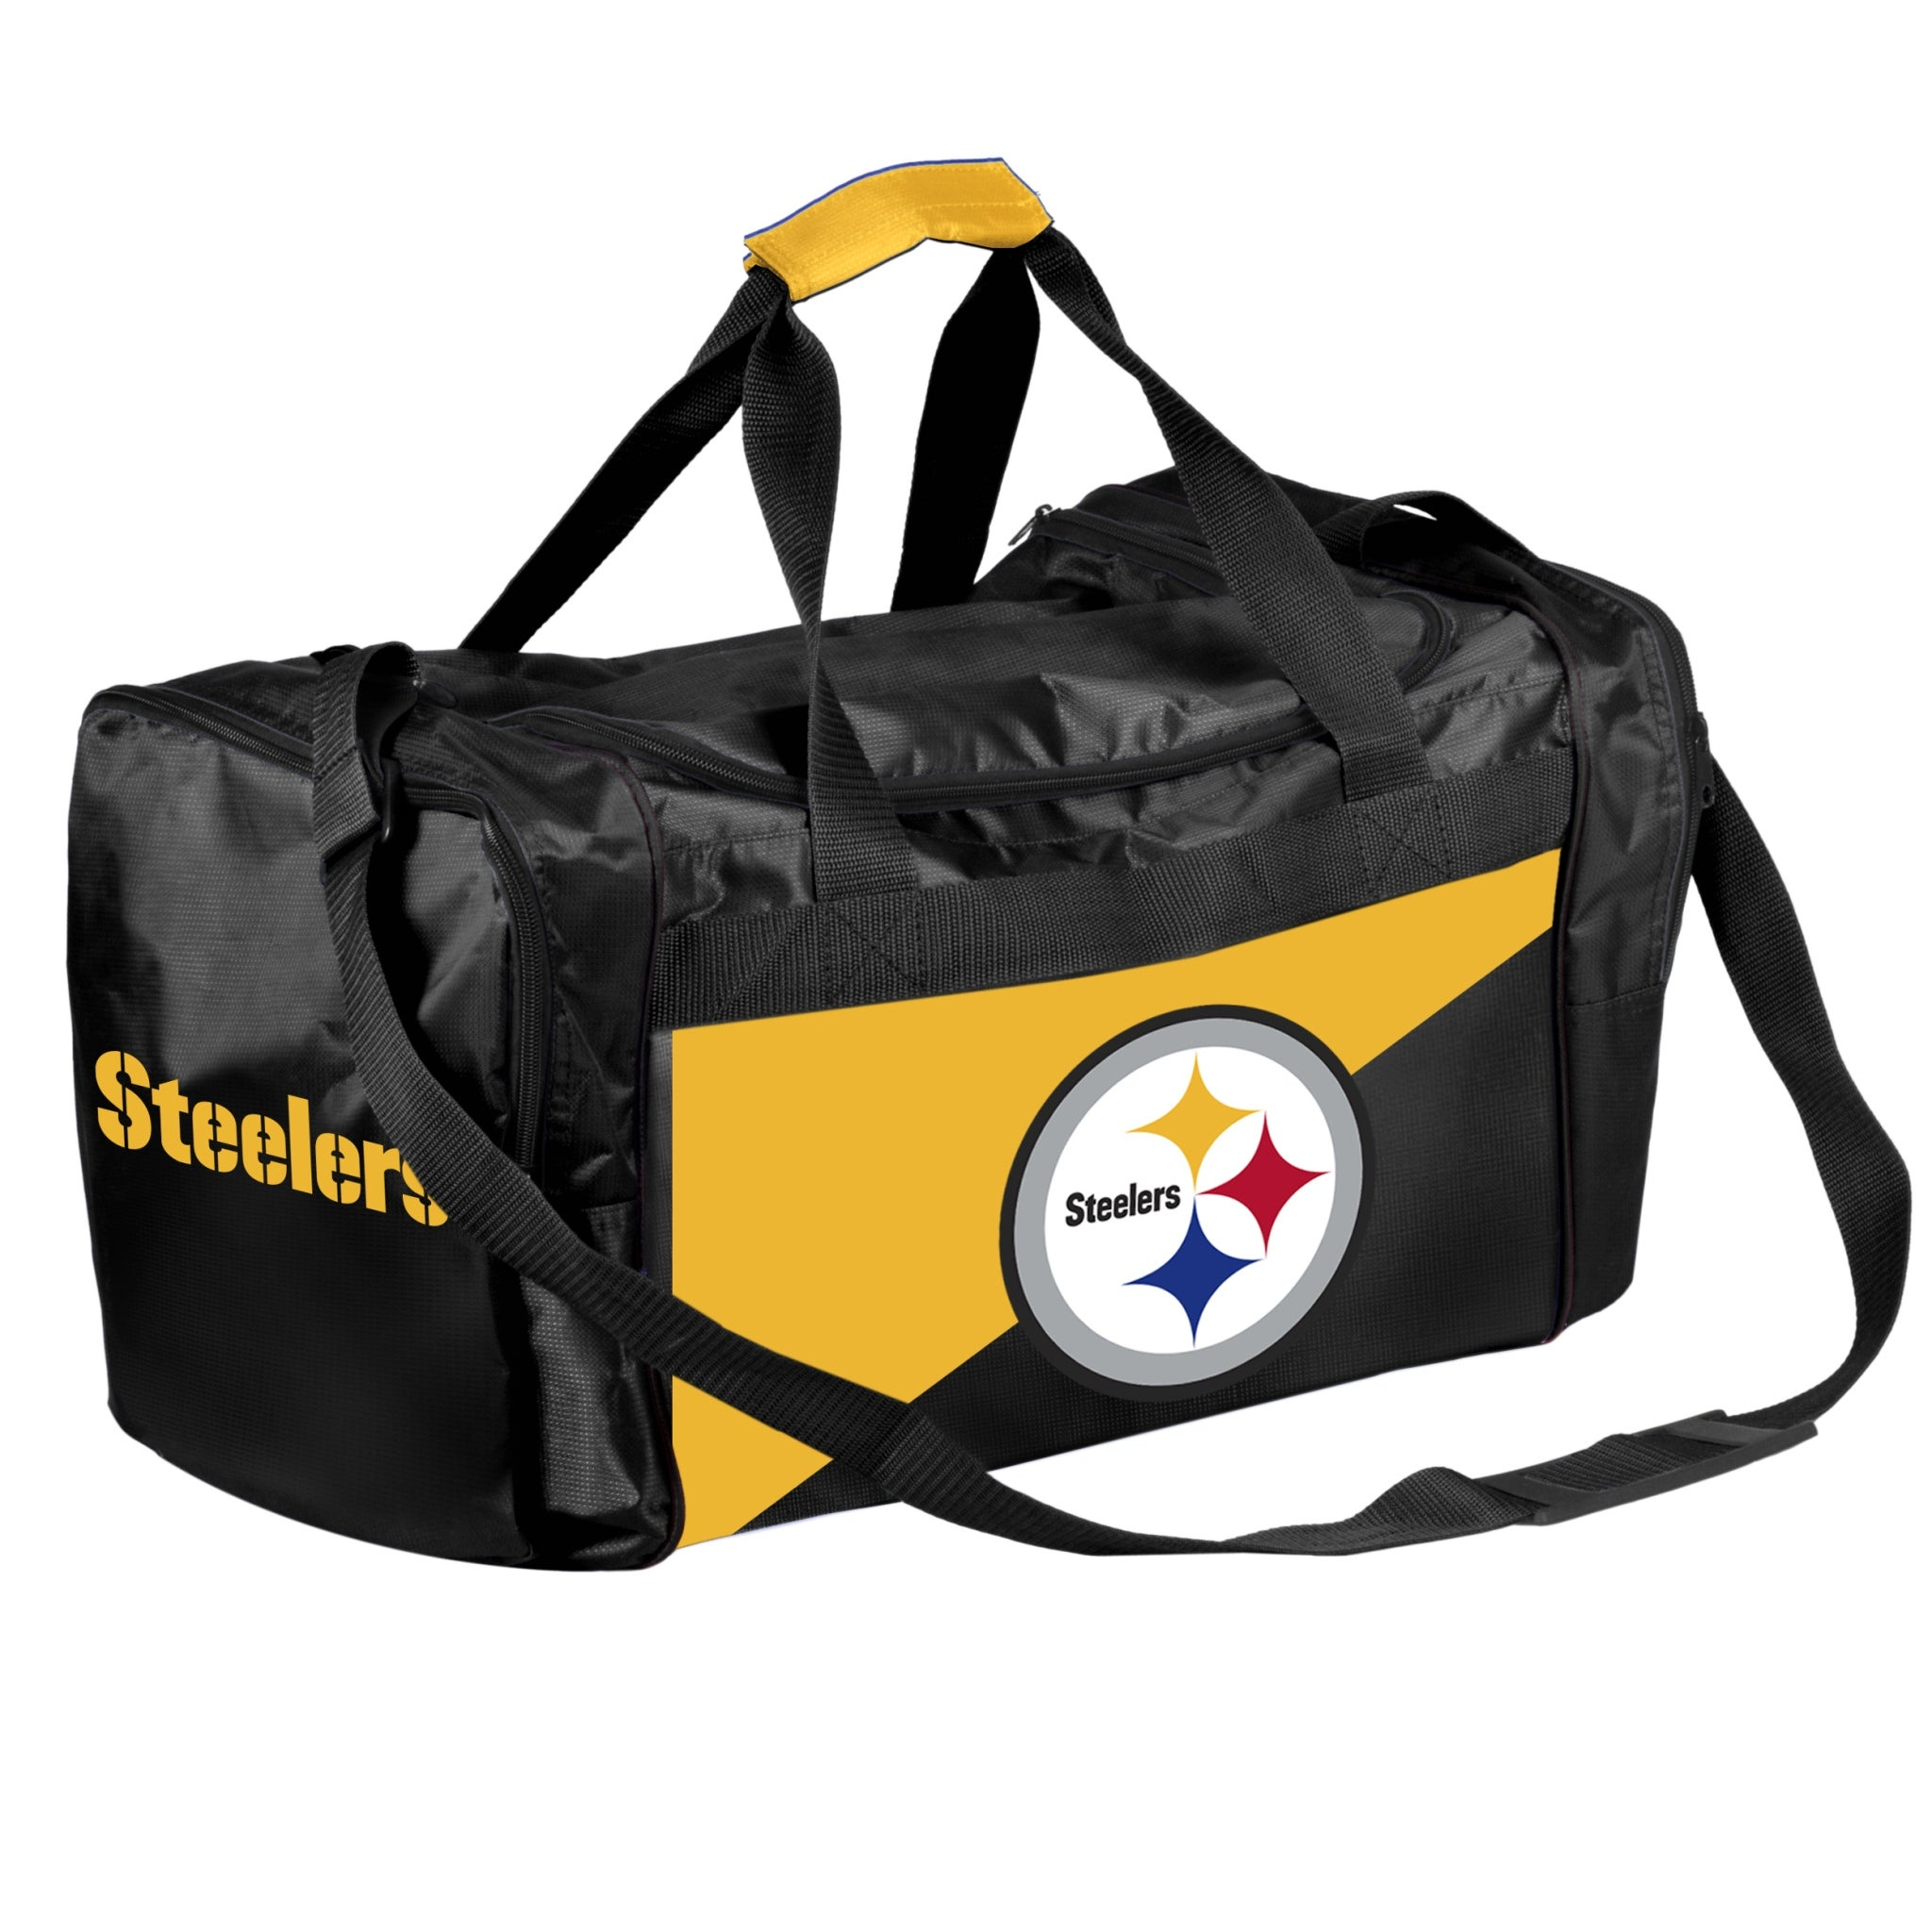 29a9caf74505 Shop Forever Collectibles Licensed NFL Two Tone Duffle Bags for Pittsburgh  Steelers - Free Shipping On Orders Over  45 - Overstock - 23613035